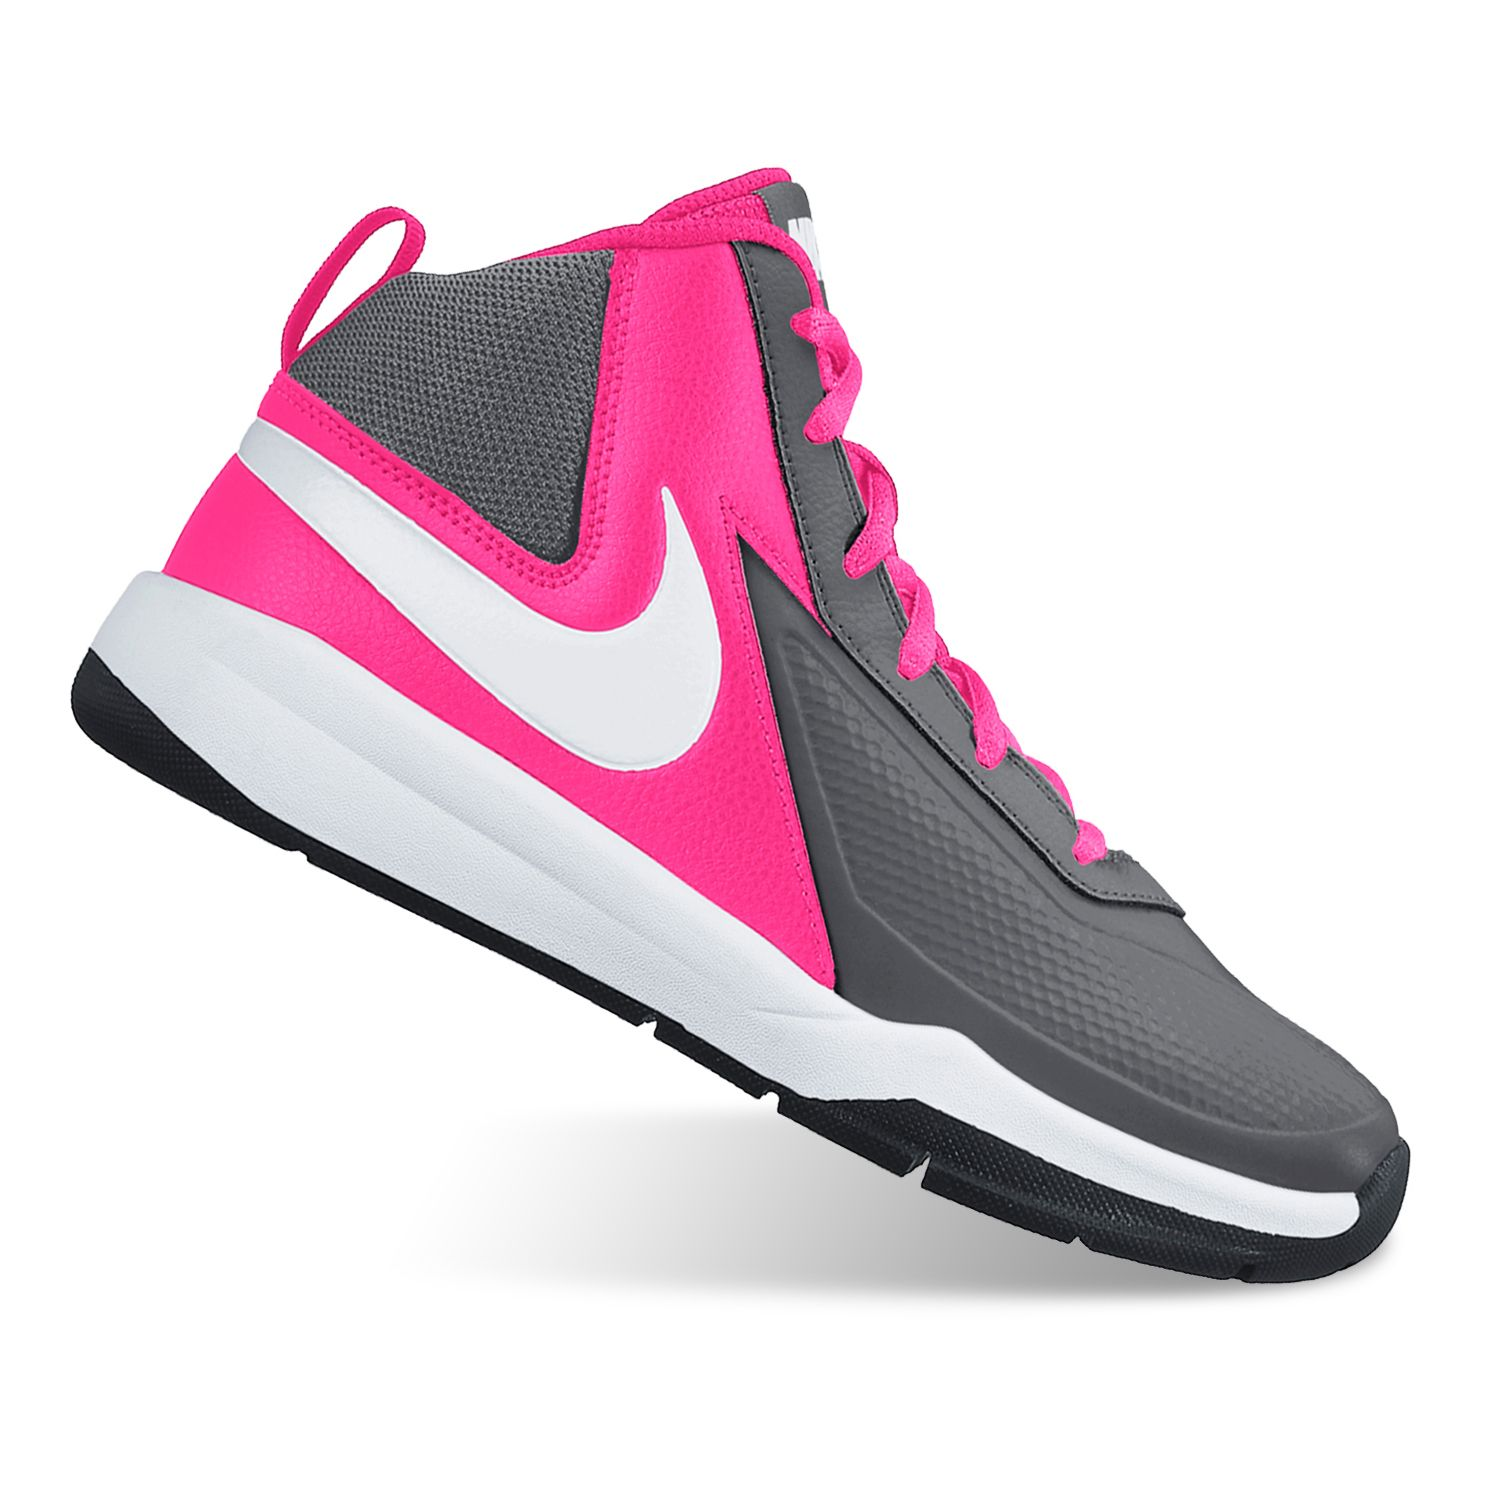 meilleure valeur style attrayant acheter pas cher nike junior basketball shoes